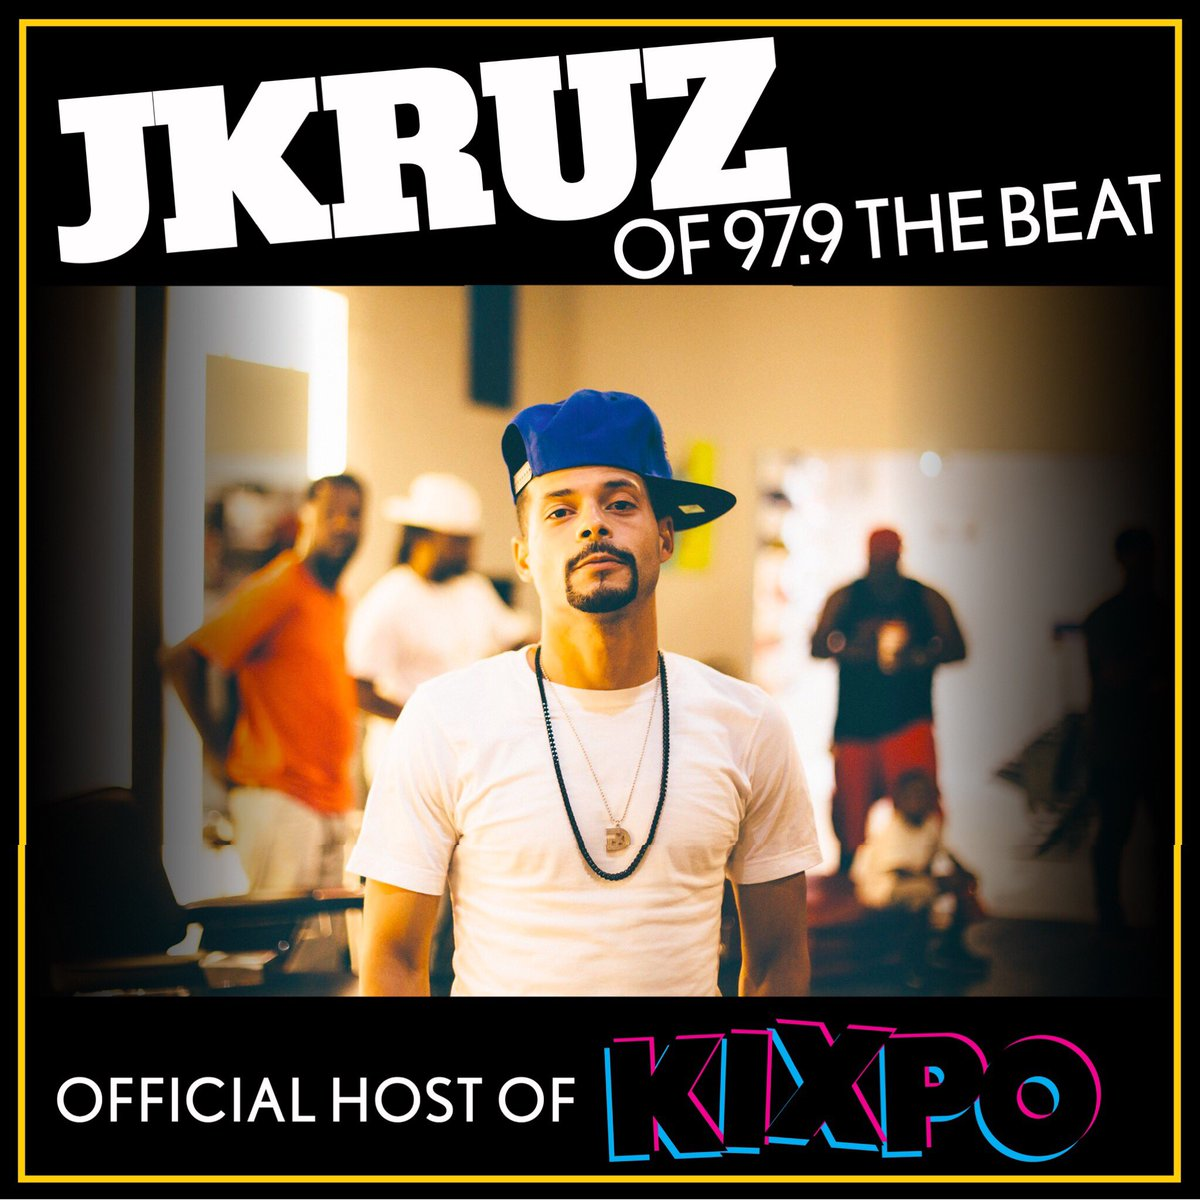 official @Kixpo host @Jkruzonair of @979thebeat & tune in everyday from 7pm-12am for a chance 2 win tix to Kixpo! https://t.co/5QkMVcUcPn